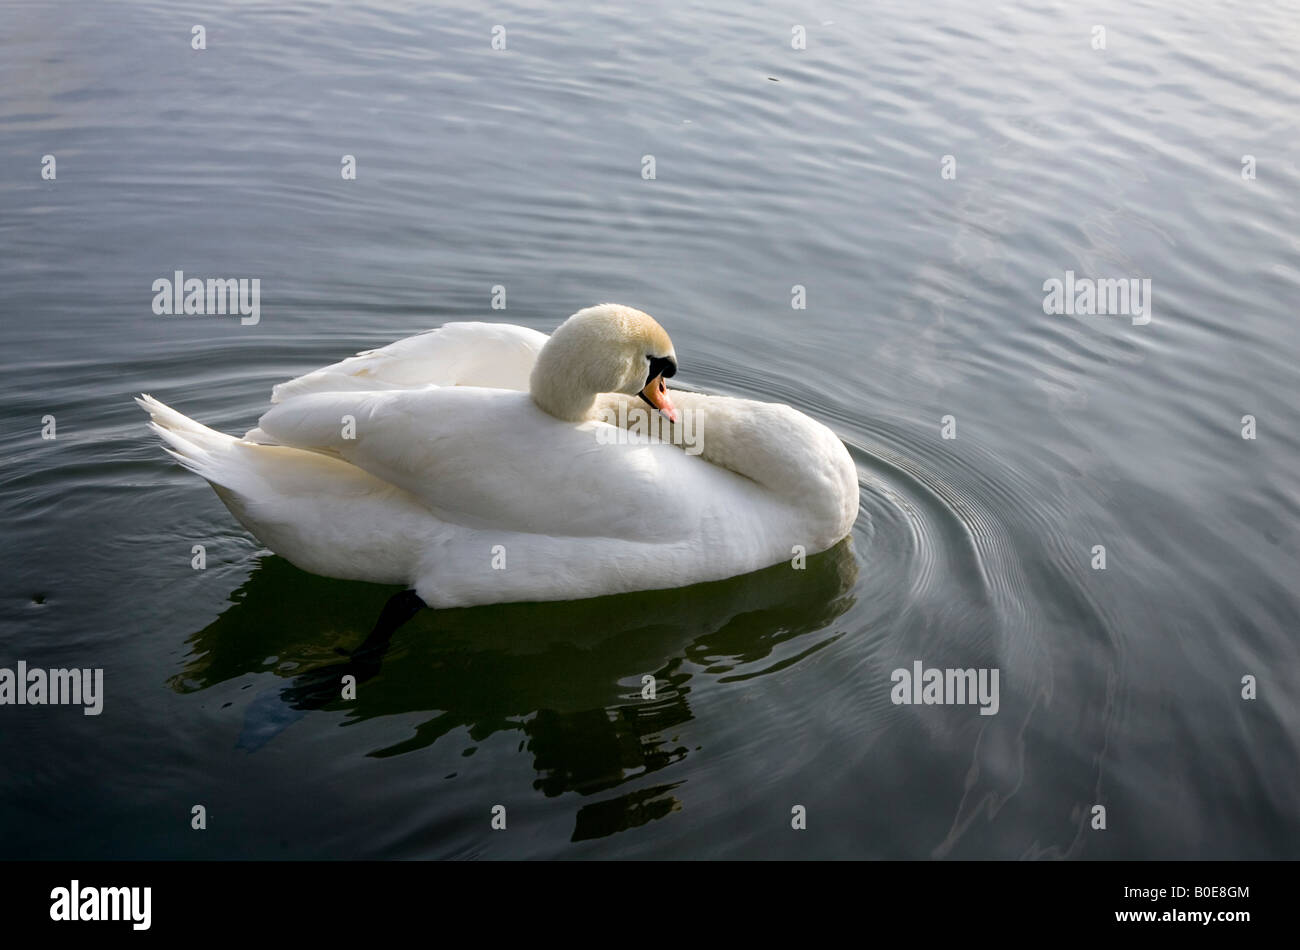 A swan on the River Thames near Medmenham, Buckinghamshire, England. Stock Photo